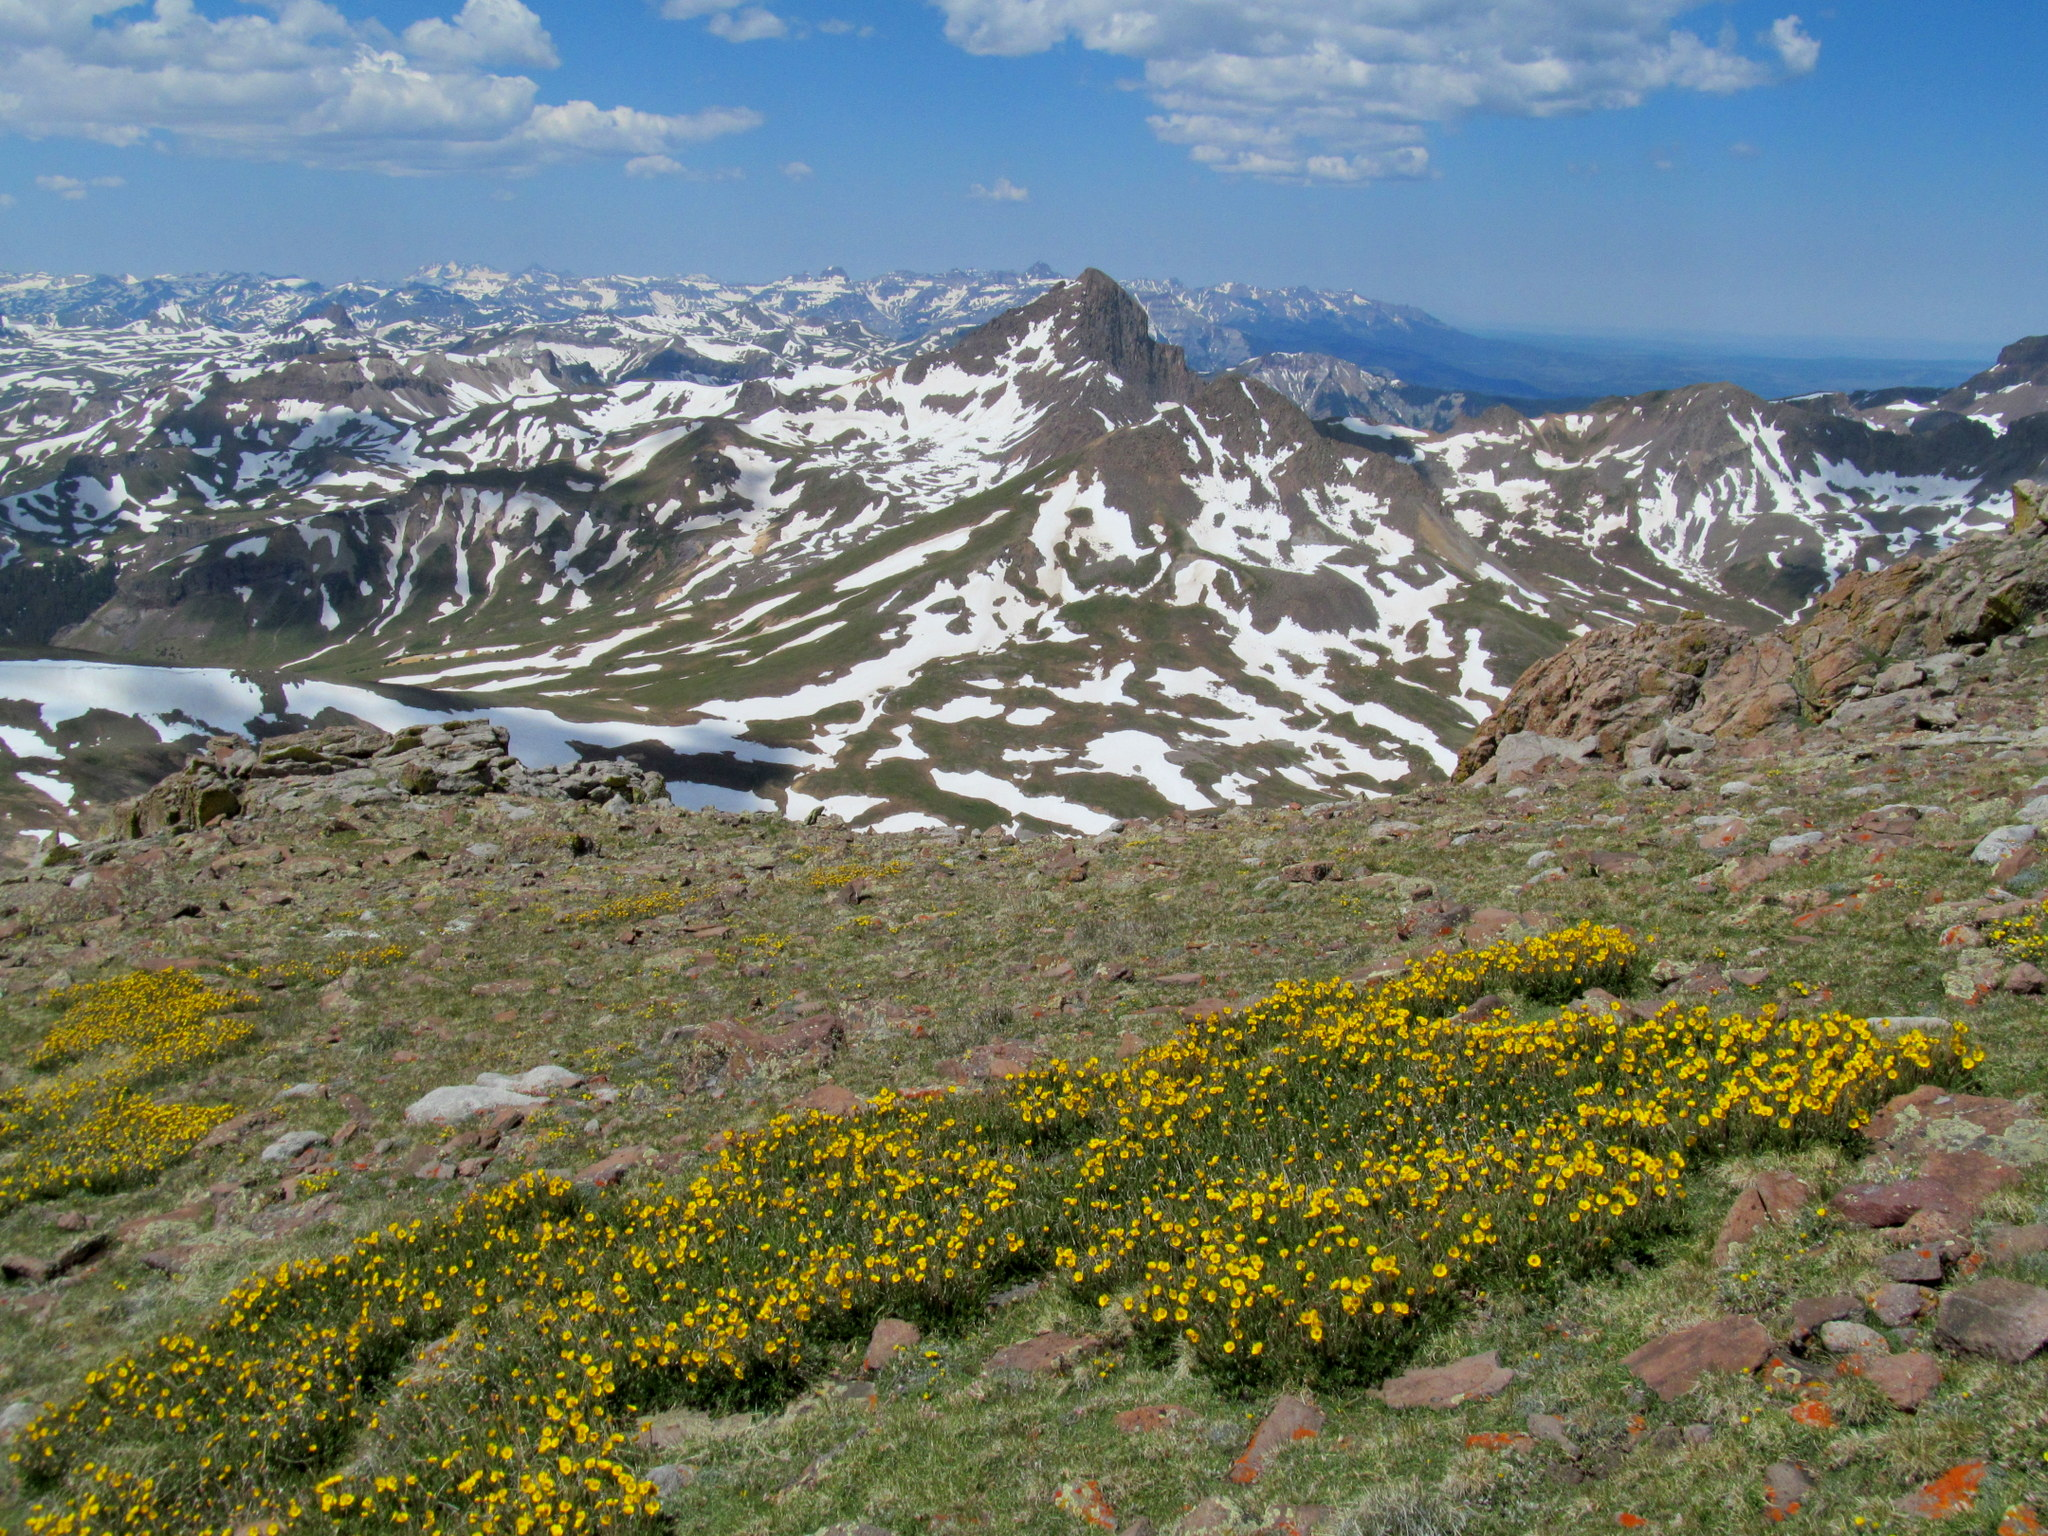 Photo: Wetterhorn and wildflowers